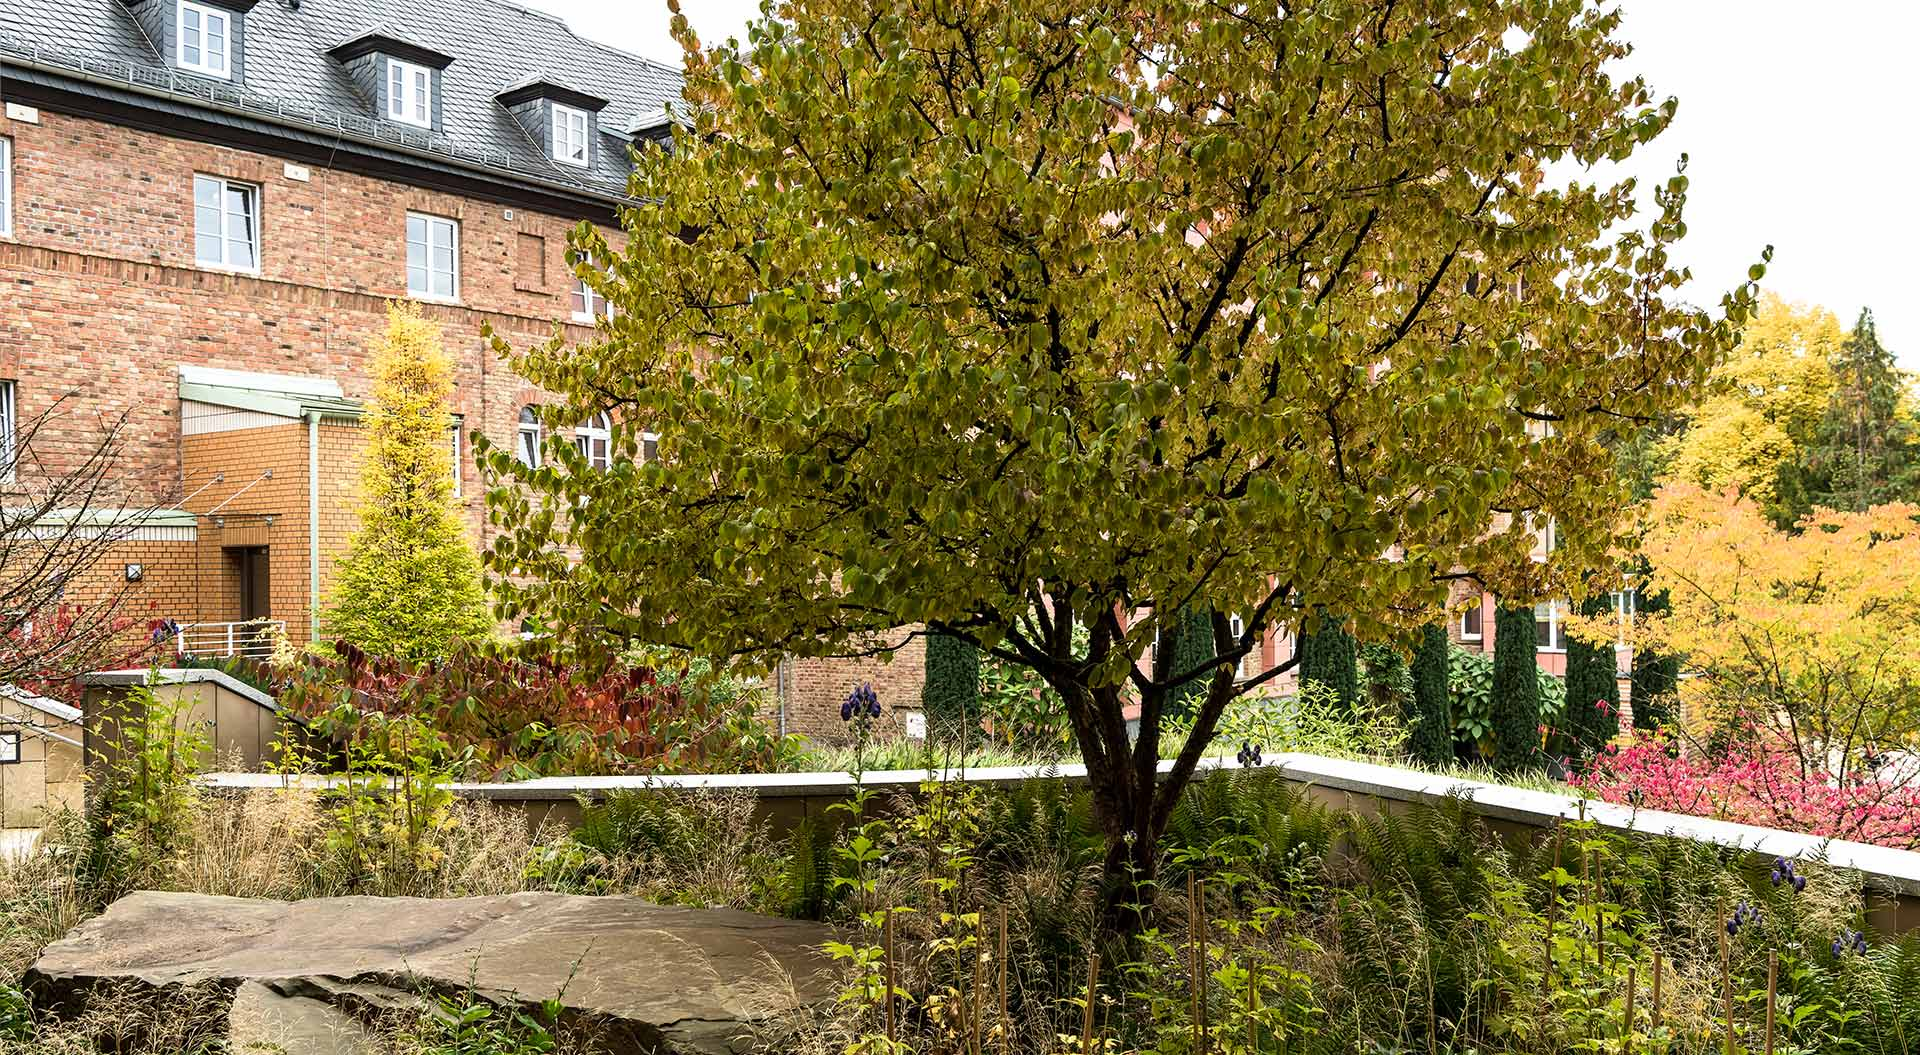 Monastery building blends perfectly into the landscaped garden